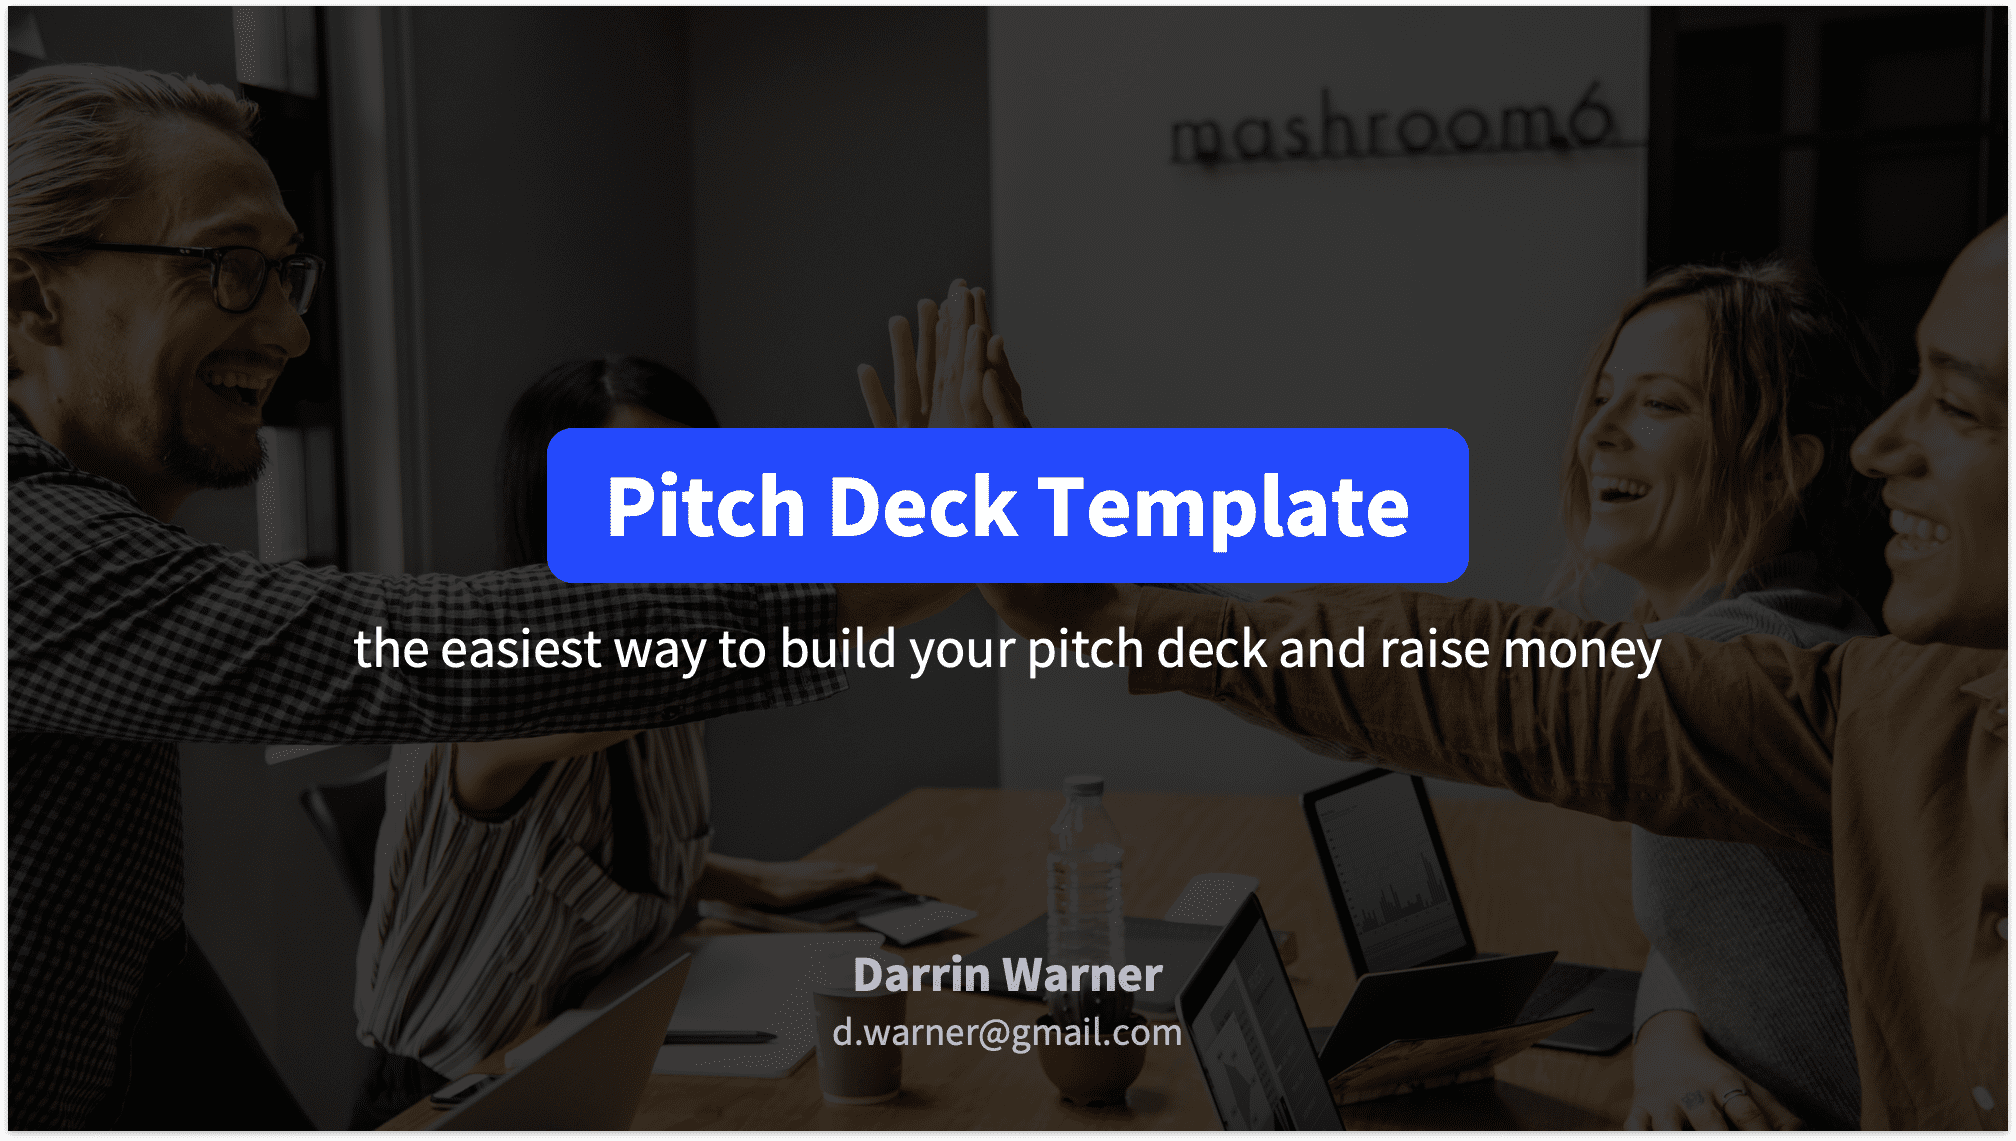 Pitch Deck Title Slide with Background Image